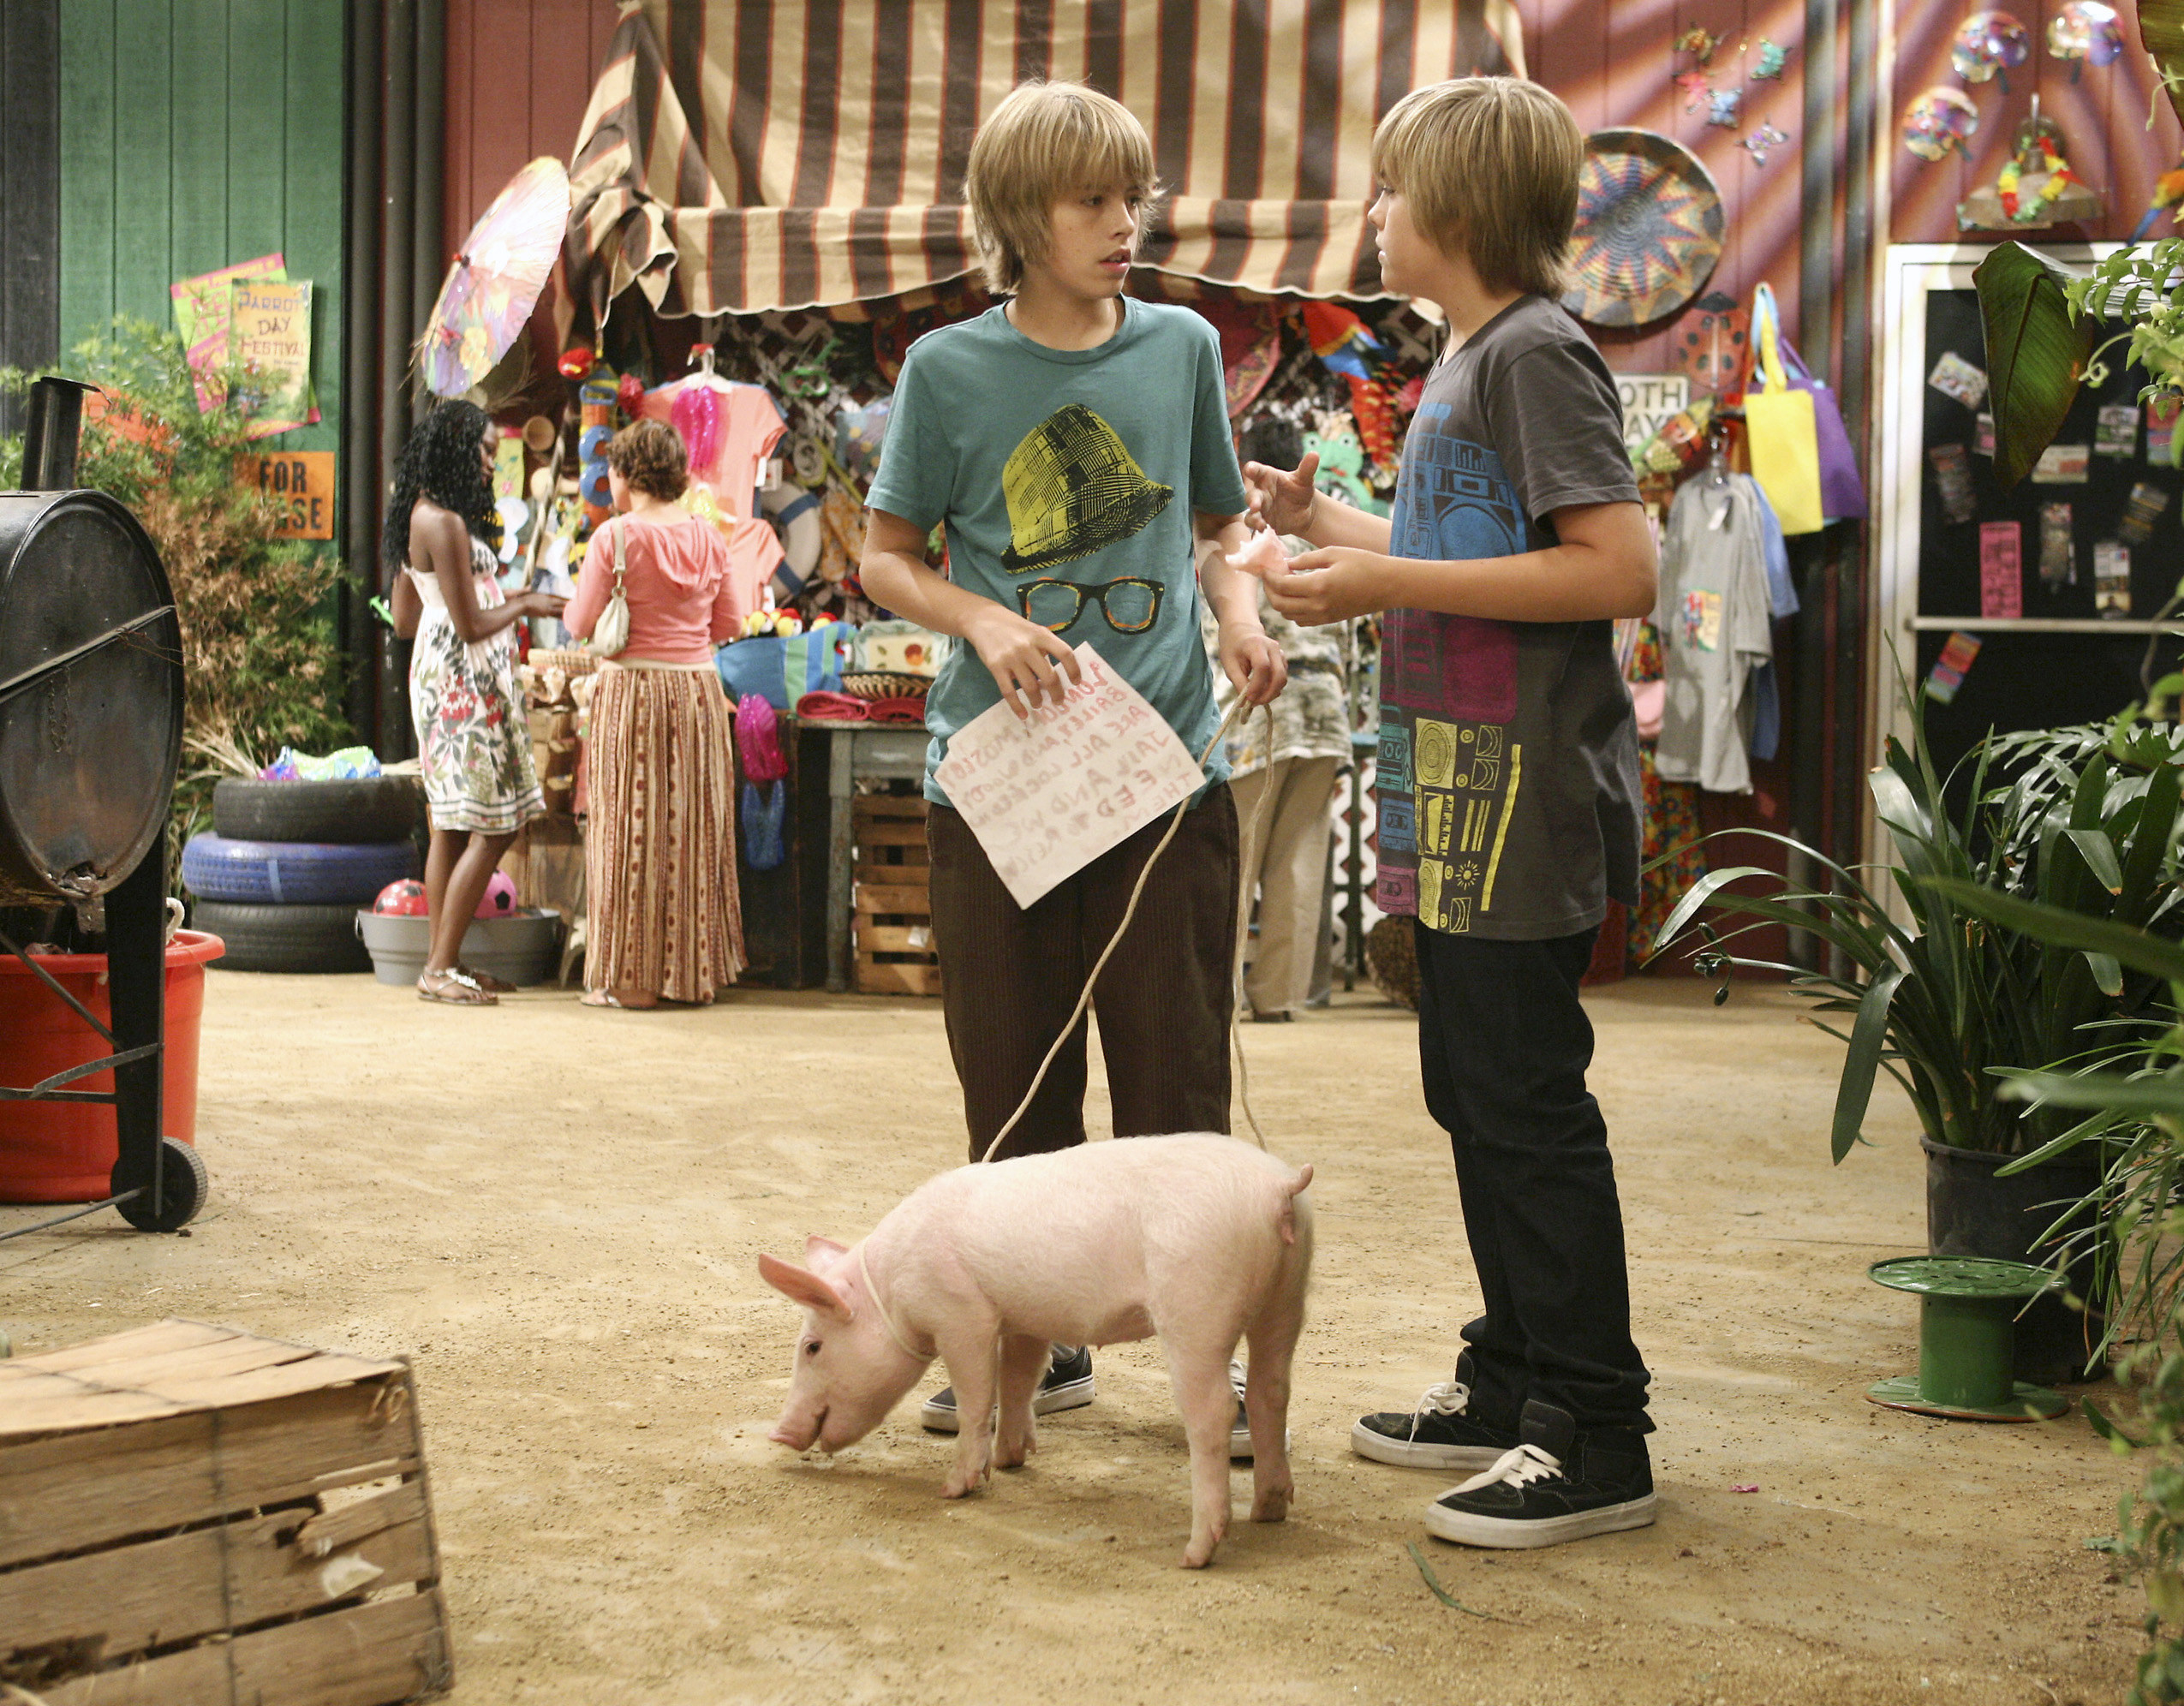 Dylan and Cole as Zack and Cody in the Suite Life